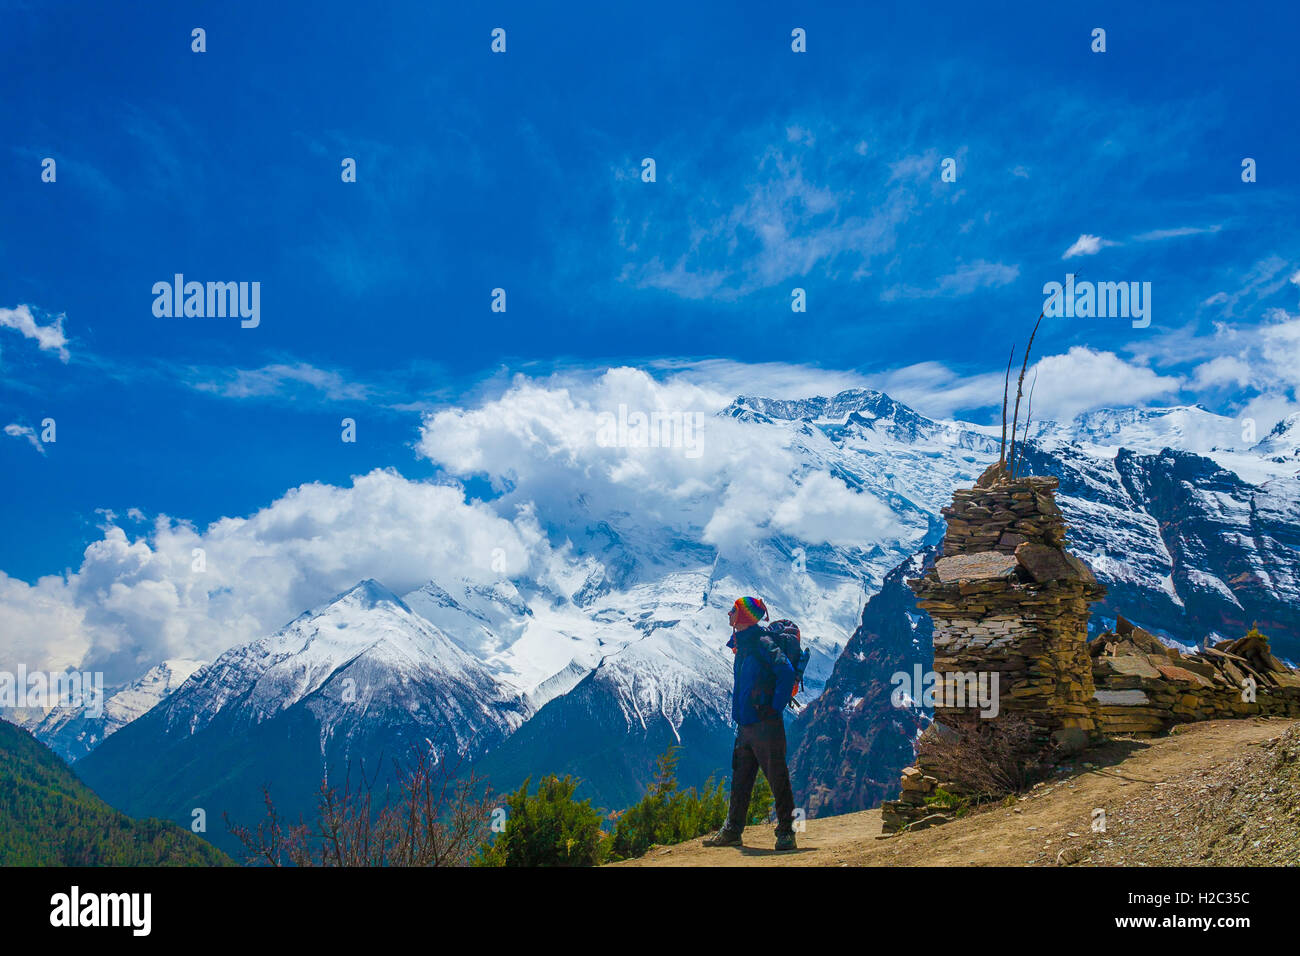 Photo Man Traveler Backpacker Mountains Way.Young Guy Looking Away Take Rest Sunny Terrace Path.Snow Landscape Background. Stock Photo